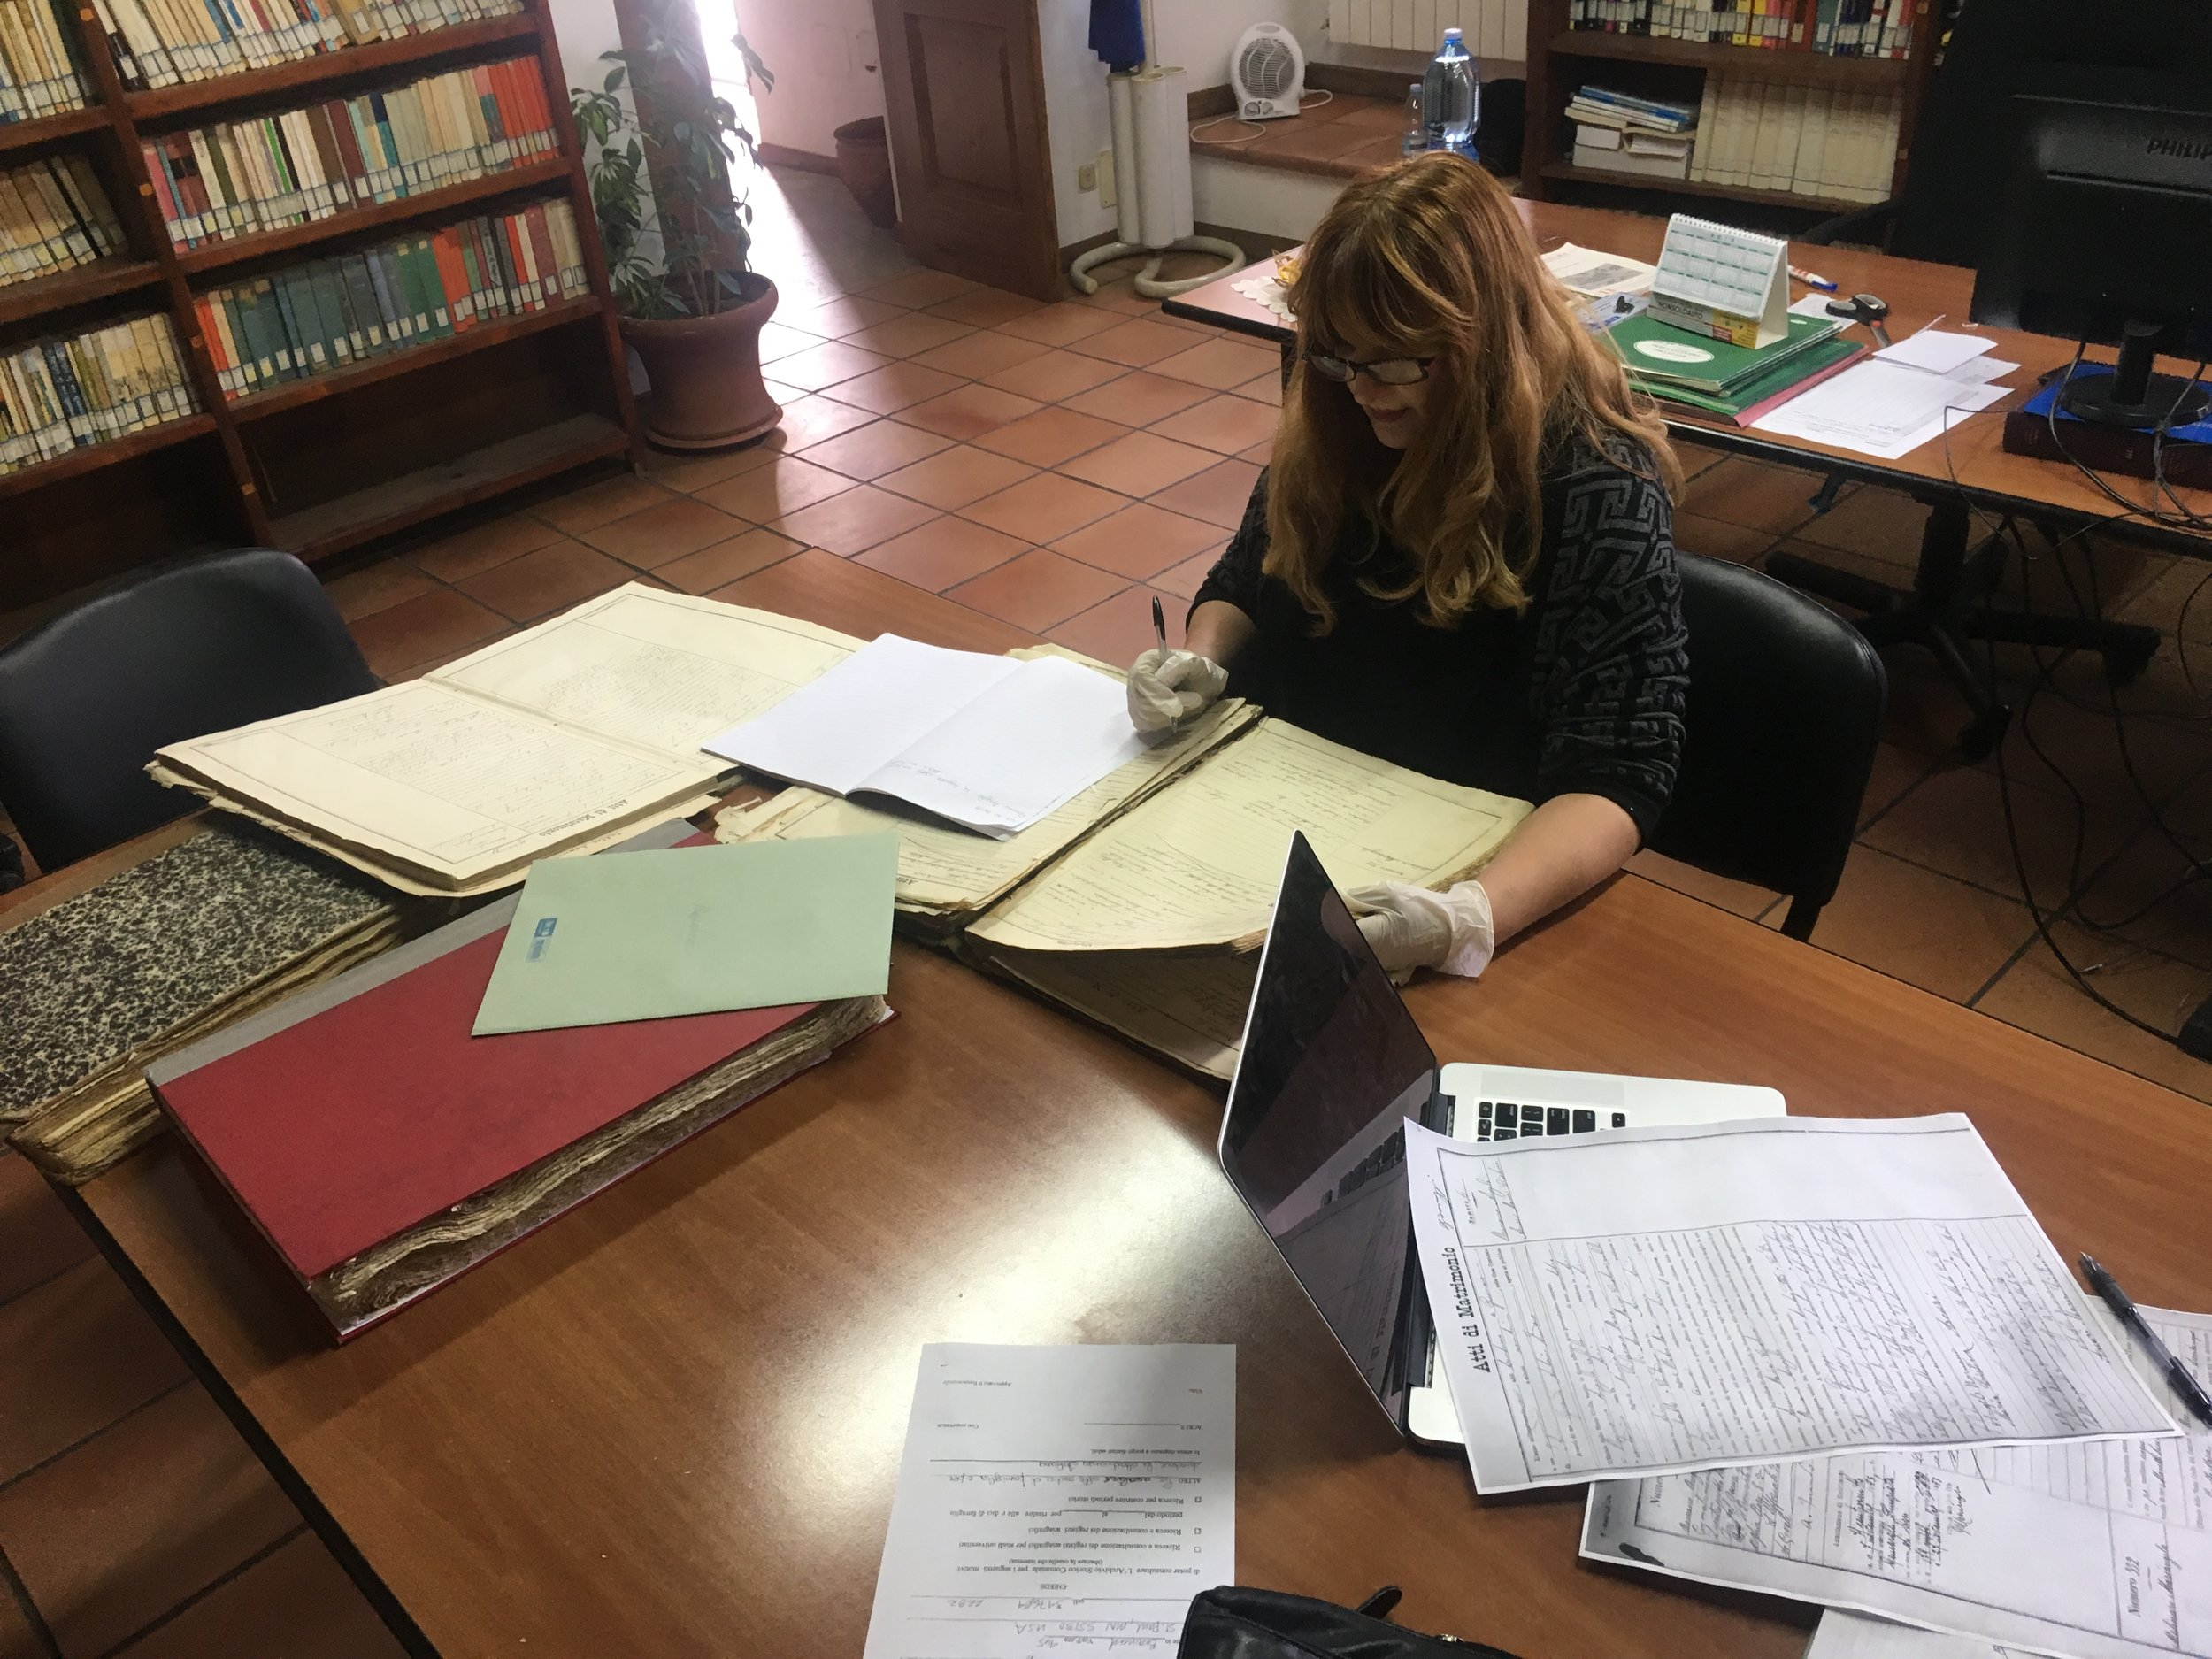 This is Stella the historical librarian at the Acri biblioteca. She is a superstar.